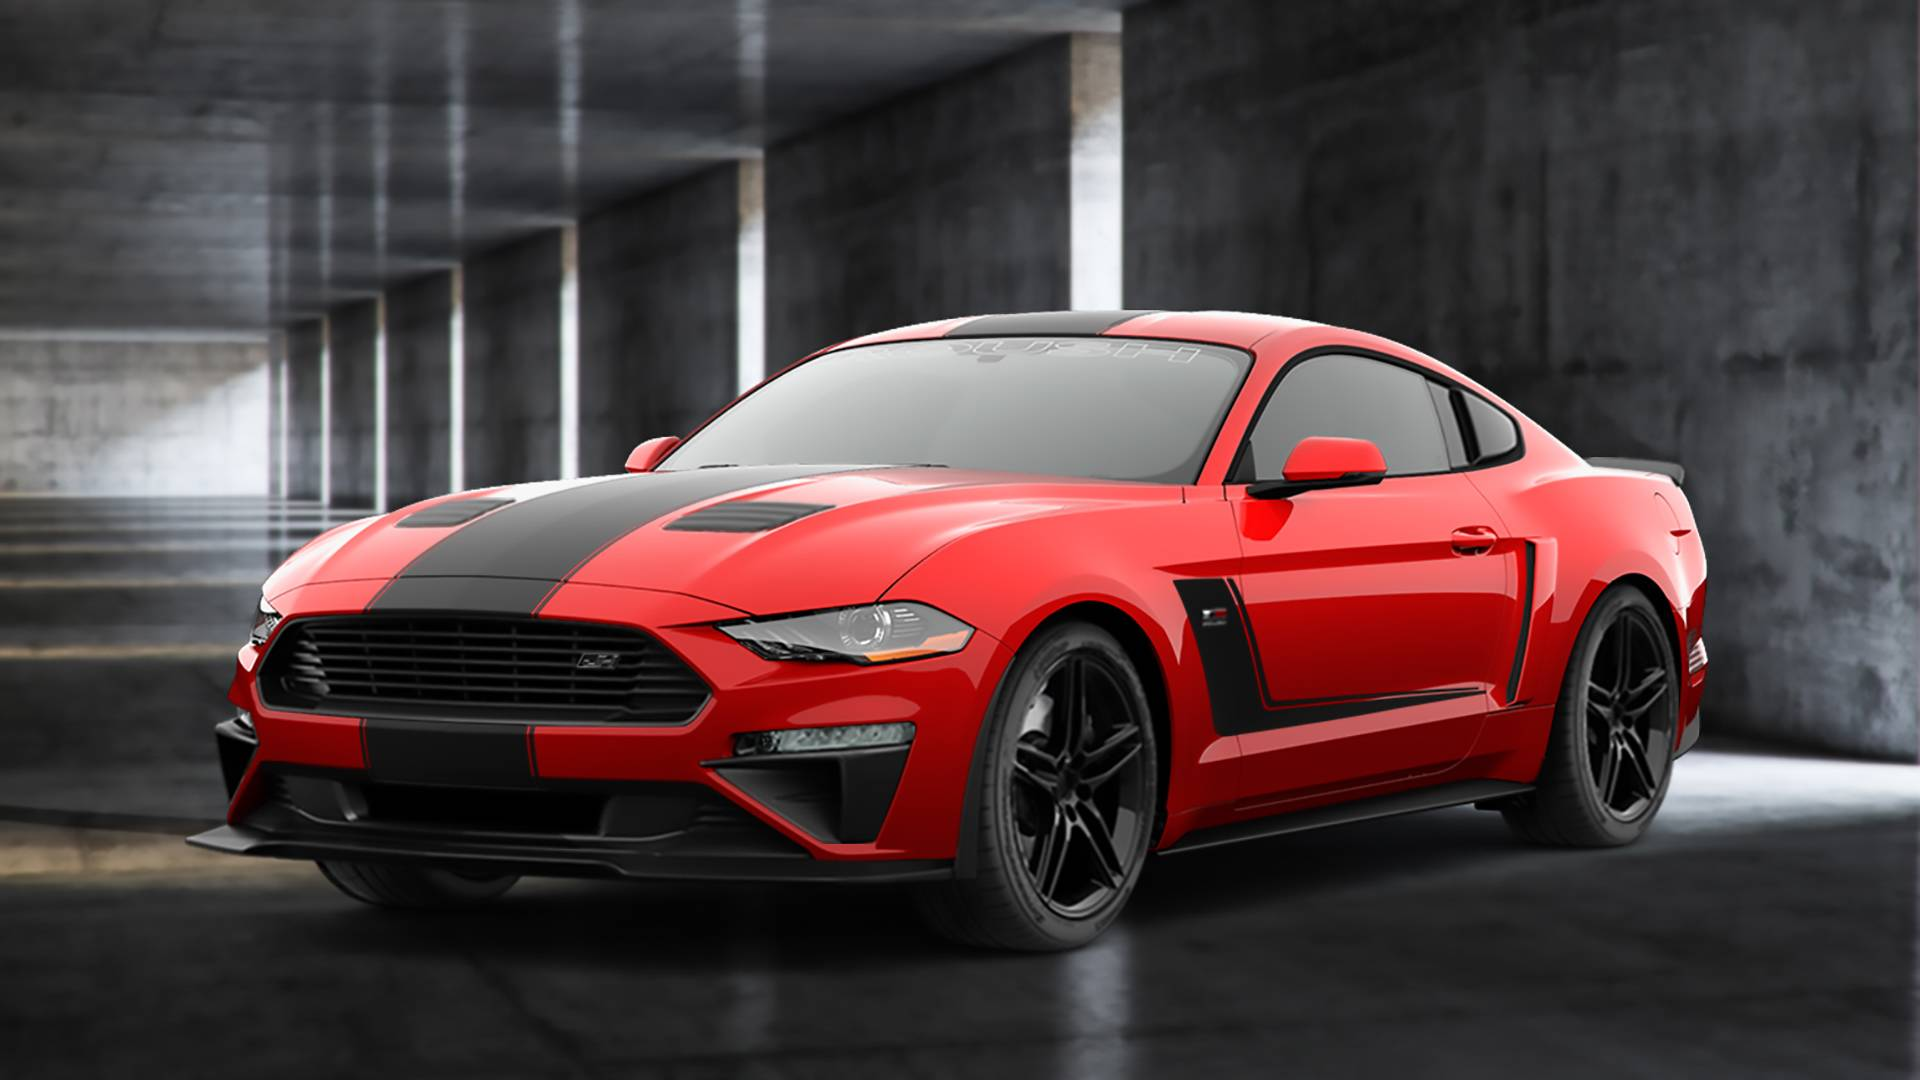 2018 roush jackhammer mustang packs a 710 hp punch to the gut